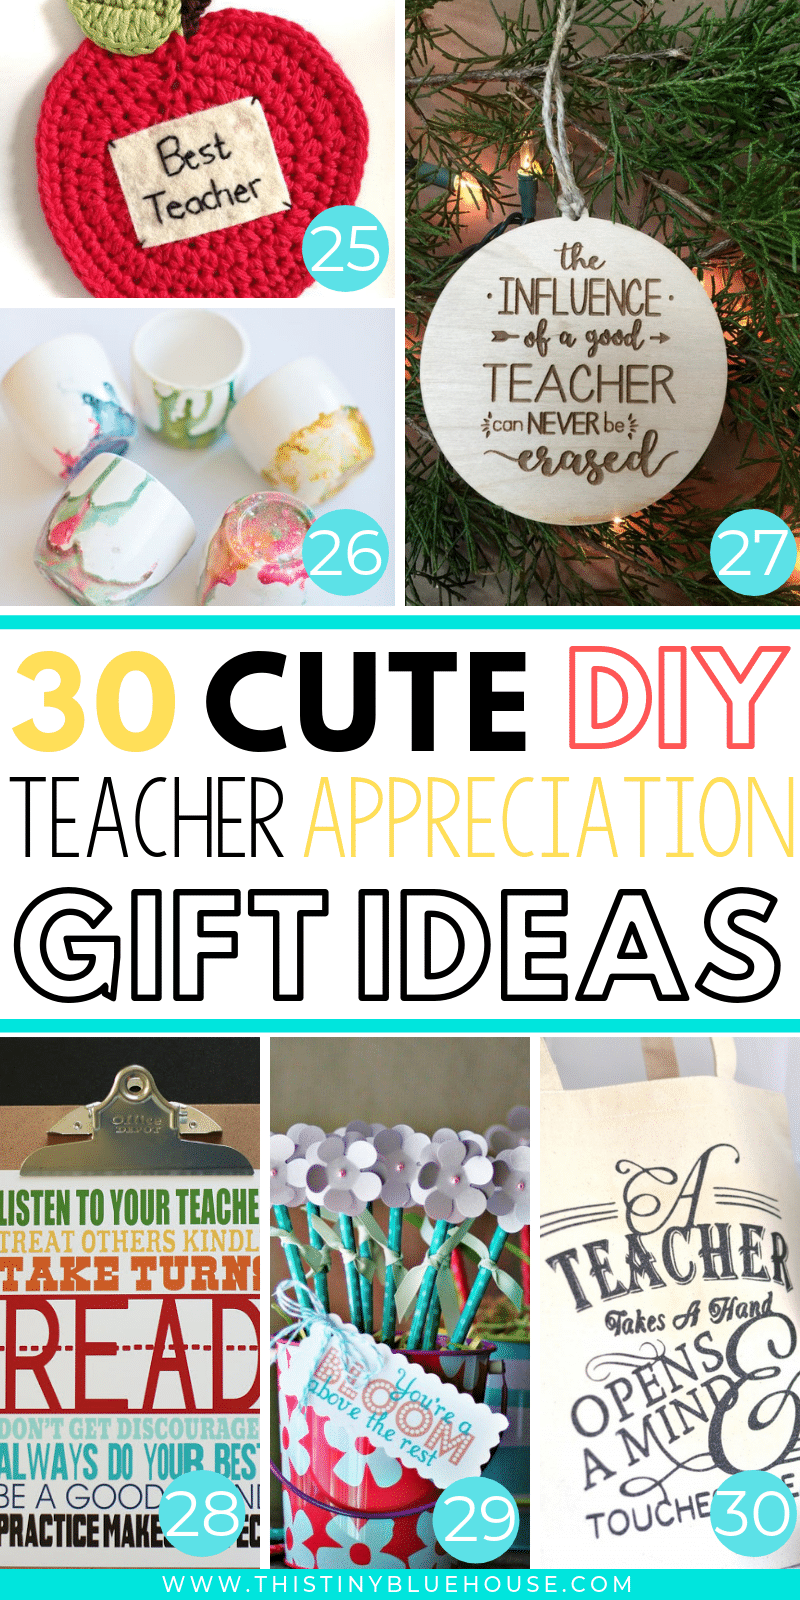 Are you looking for cute teacher appreciation gifts to express your gratitude? Here are the absolute best cute and DIY teacher appreciation gifts. #teachergifts #teacherappreciationgifts #teachergiftsendofyear #teachergiftsdiy #easydiyteachergifts #homemadeteachergifts #uniqueteachergifts